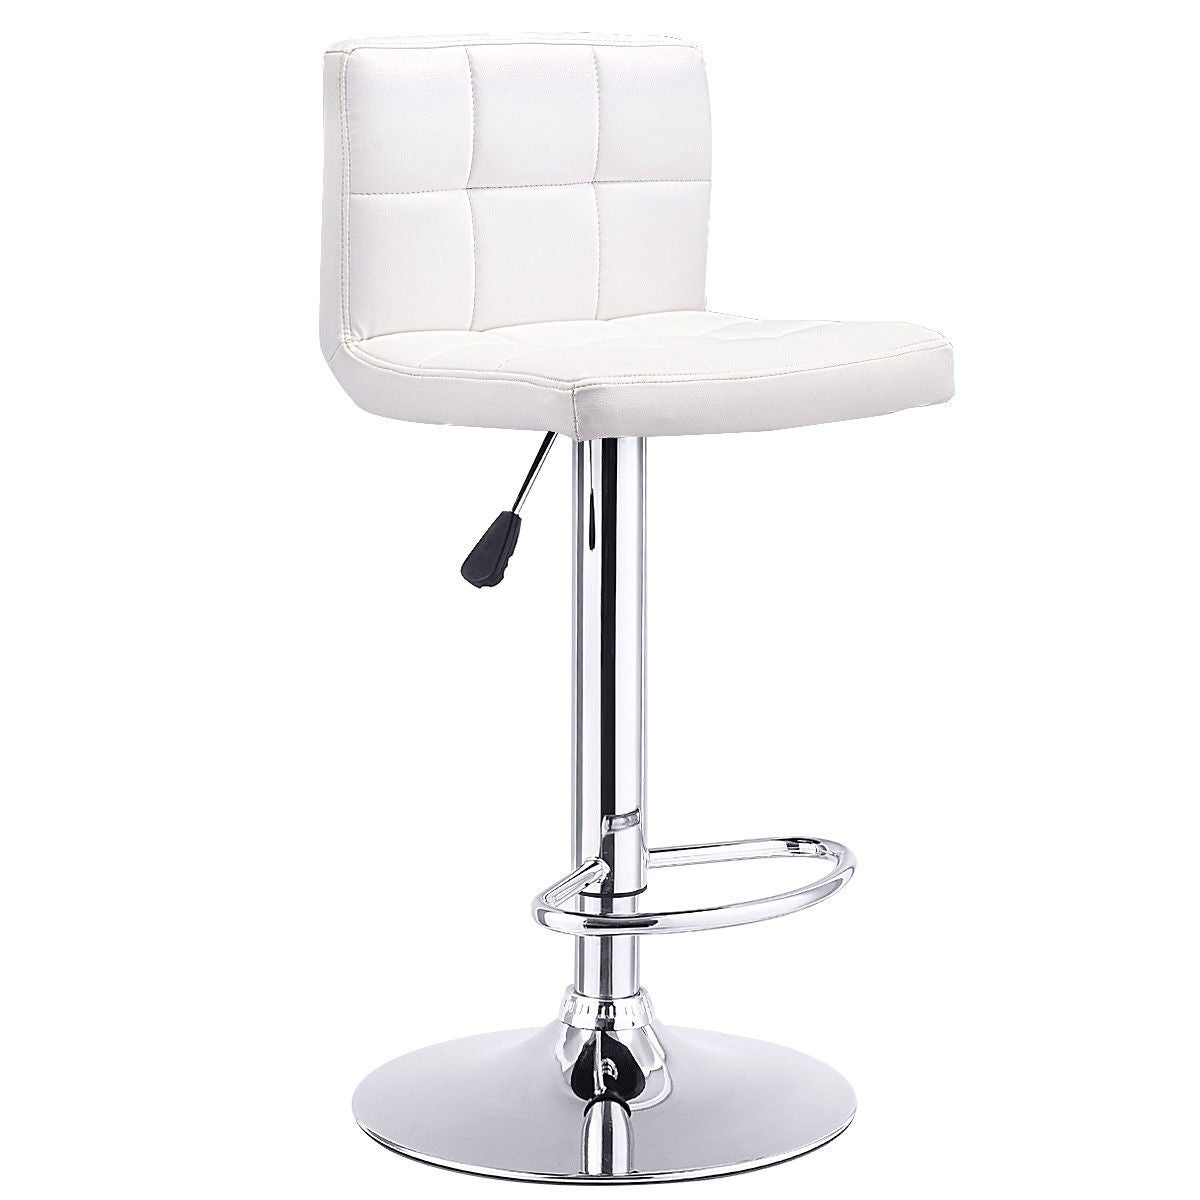 Shop Costway 1 PC Bar Stool Swivel Adjustable PU Leather Barstools Bistro  Pub Chair White   Free Shipping Today   Overstock.com   16339783